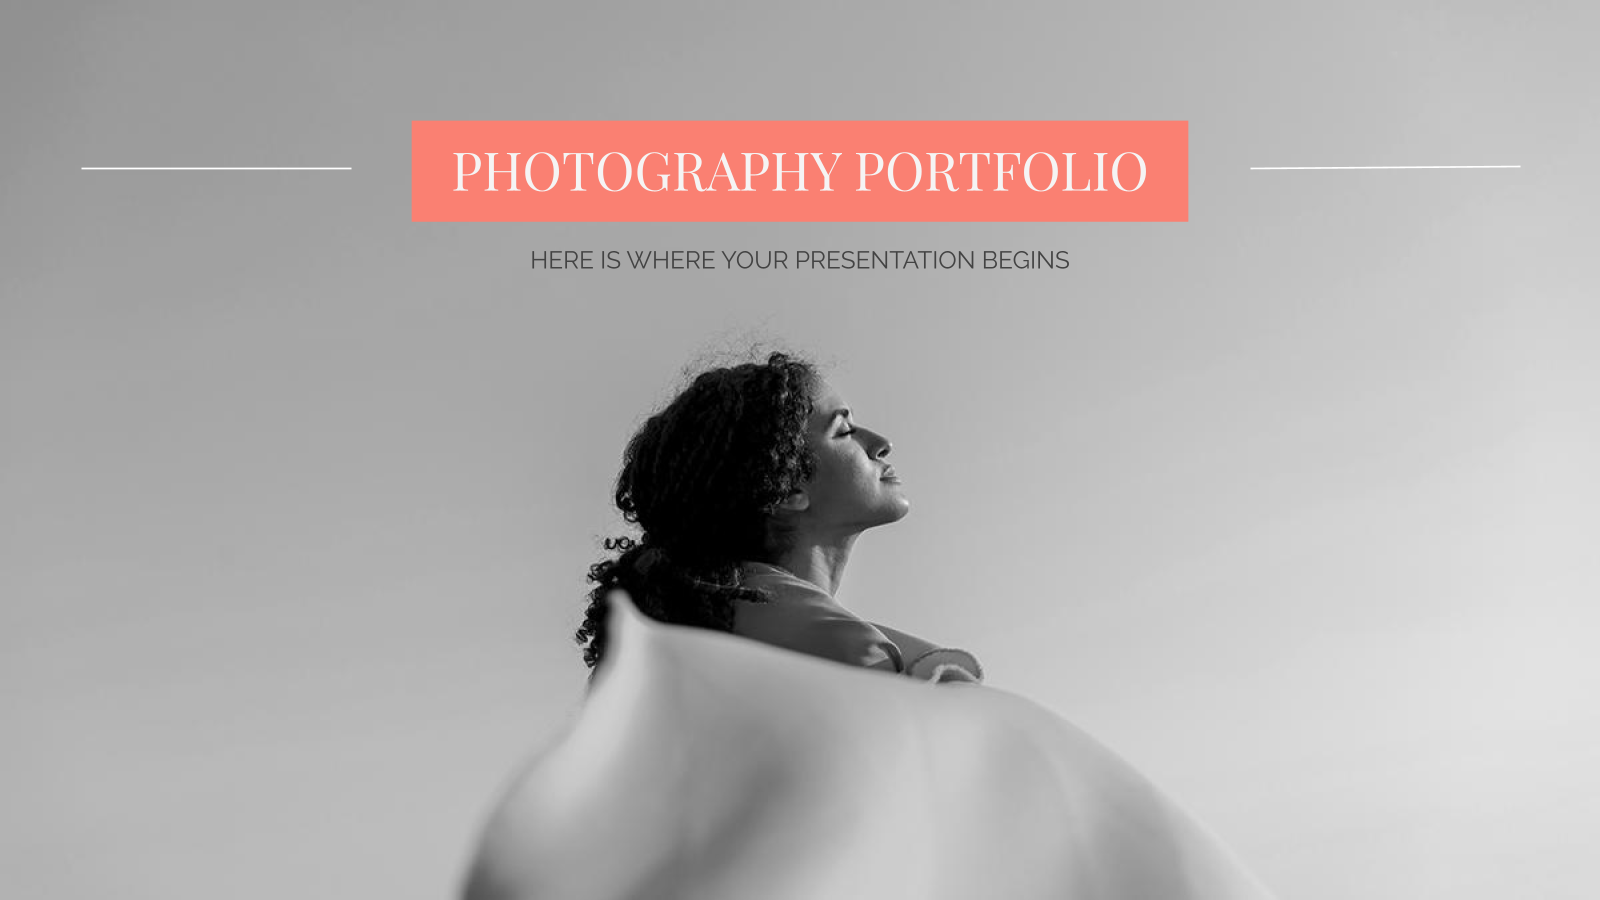 Photography Portfolio presentation template